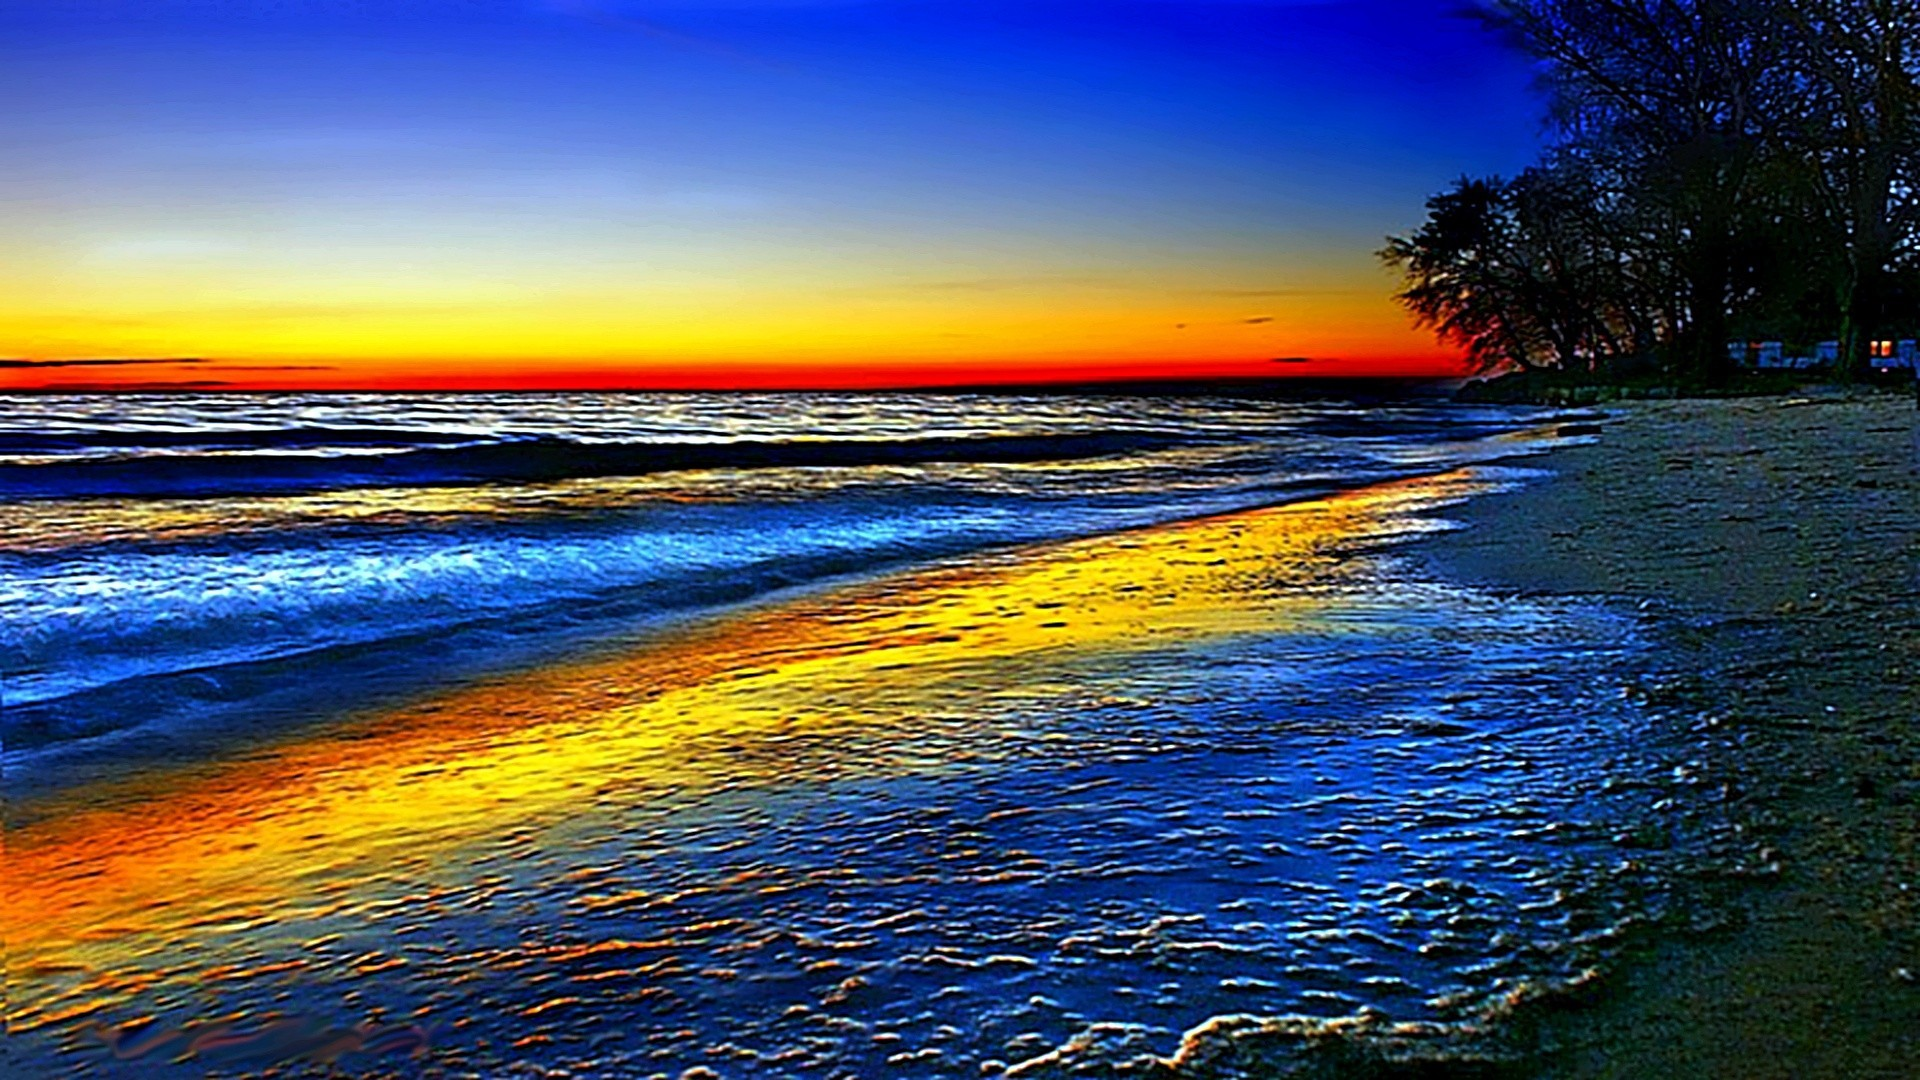 Res: 1920x1080, Ocean Rainbow Trees Wave Sky Beach Colorful Wallpaper Free Download -